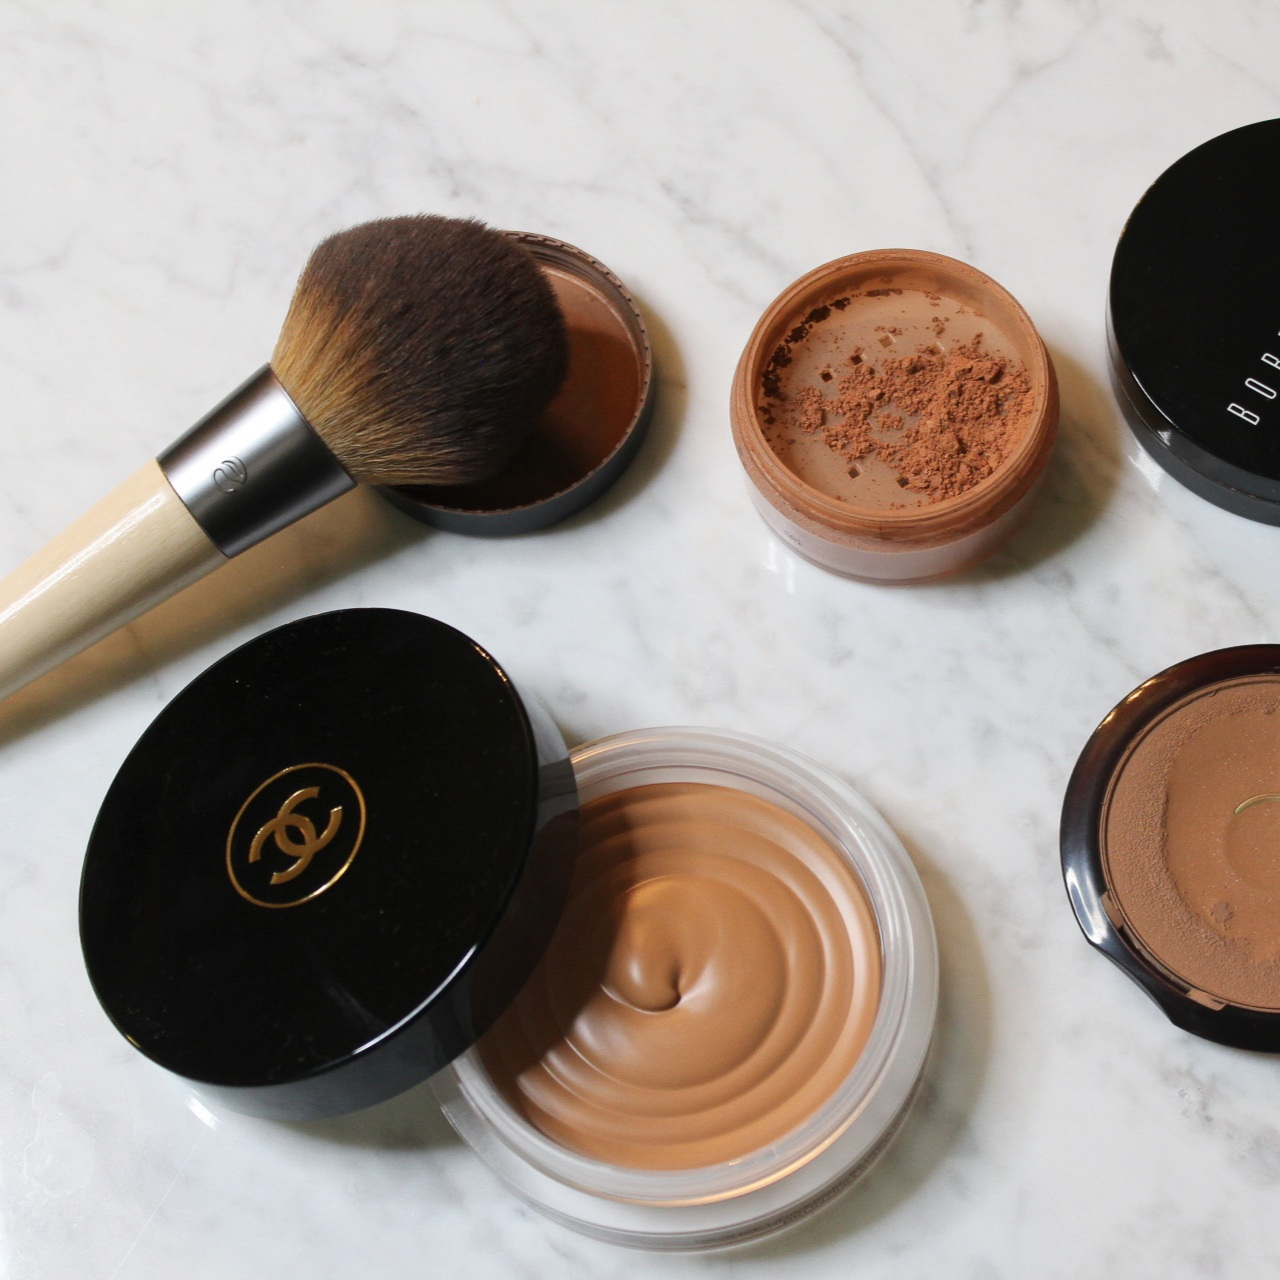 BEAUTY 101 - THE BEST BRONZERS FOR A SUN KISSED GLOW